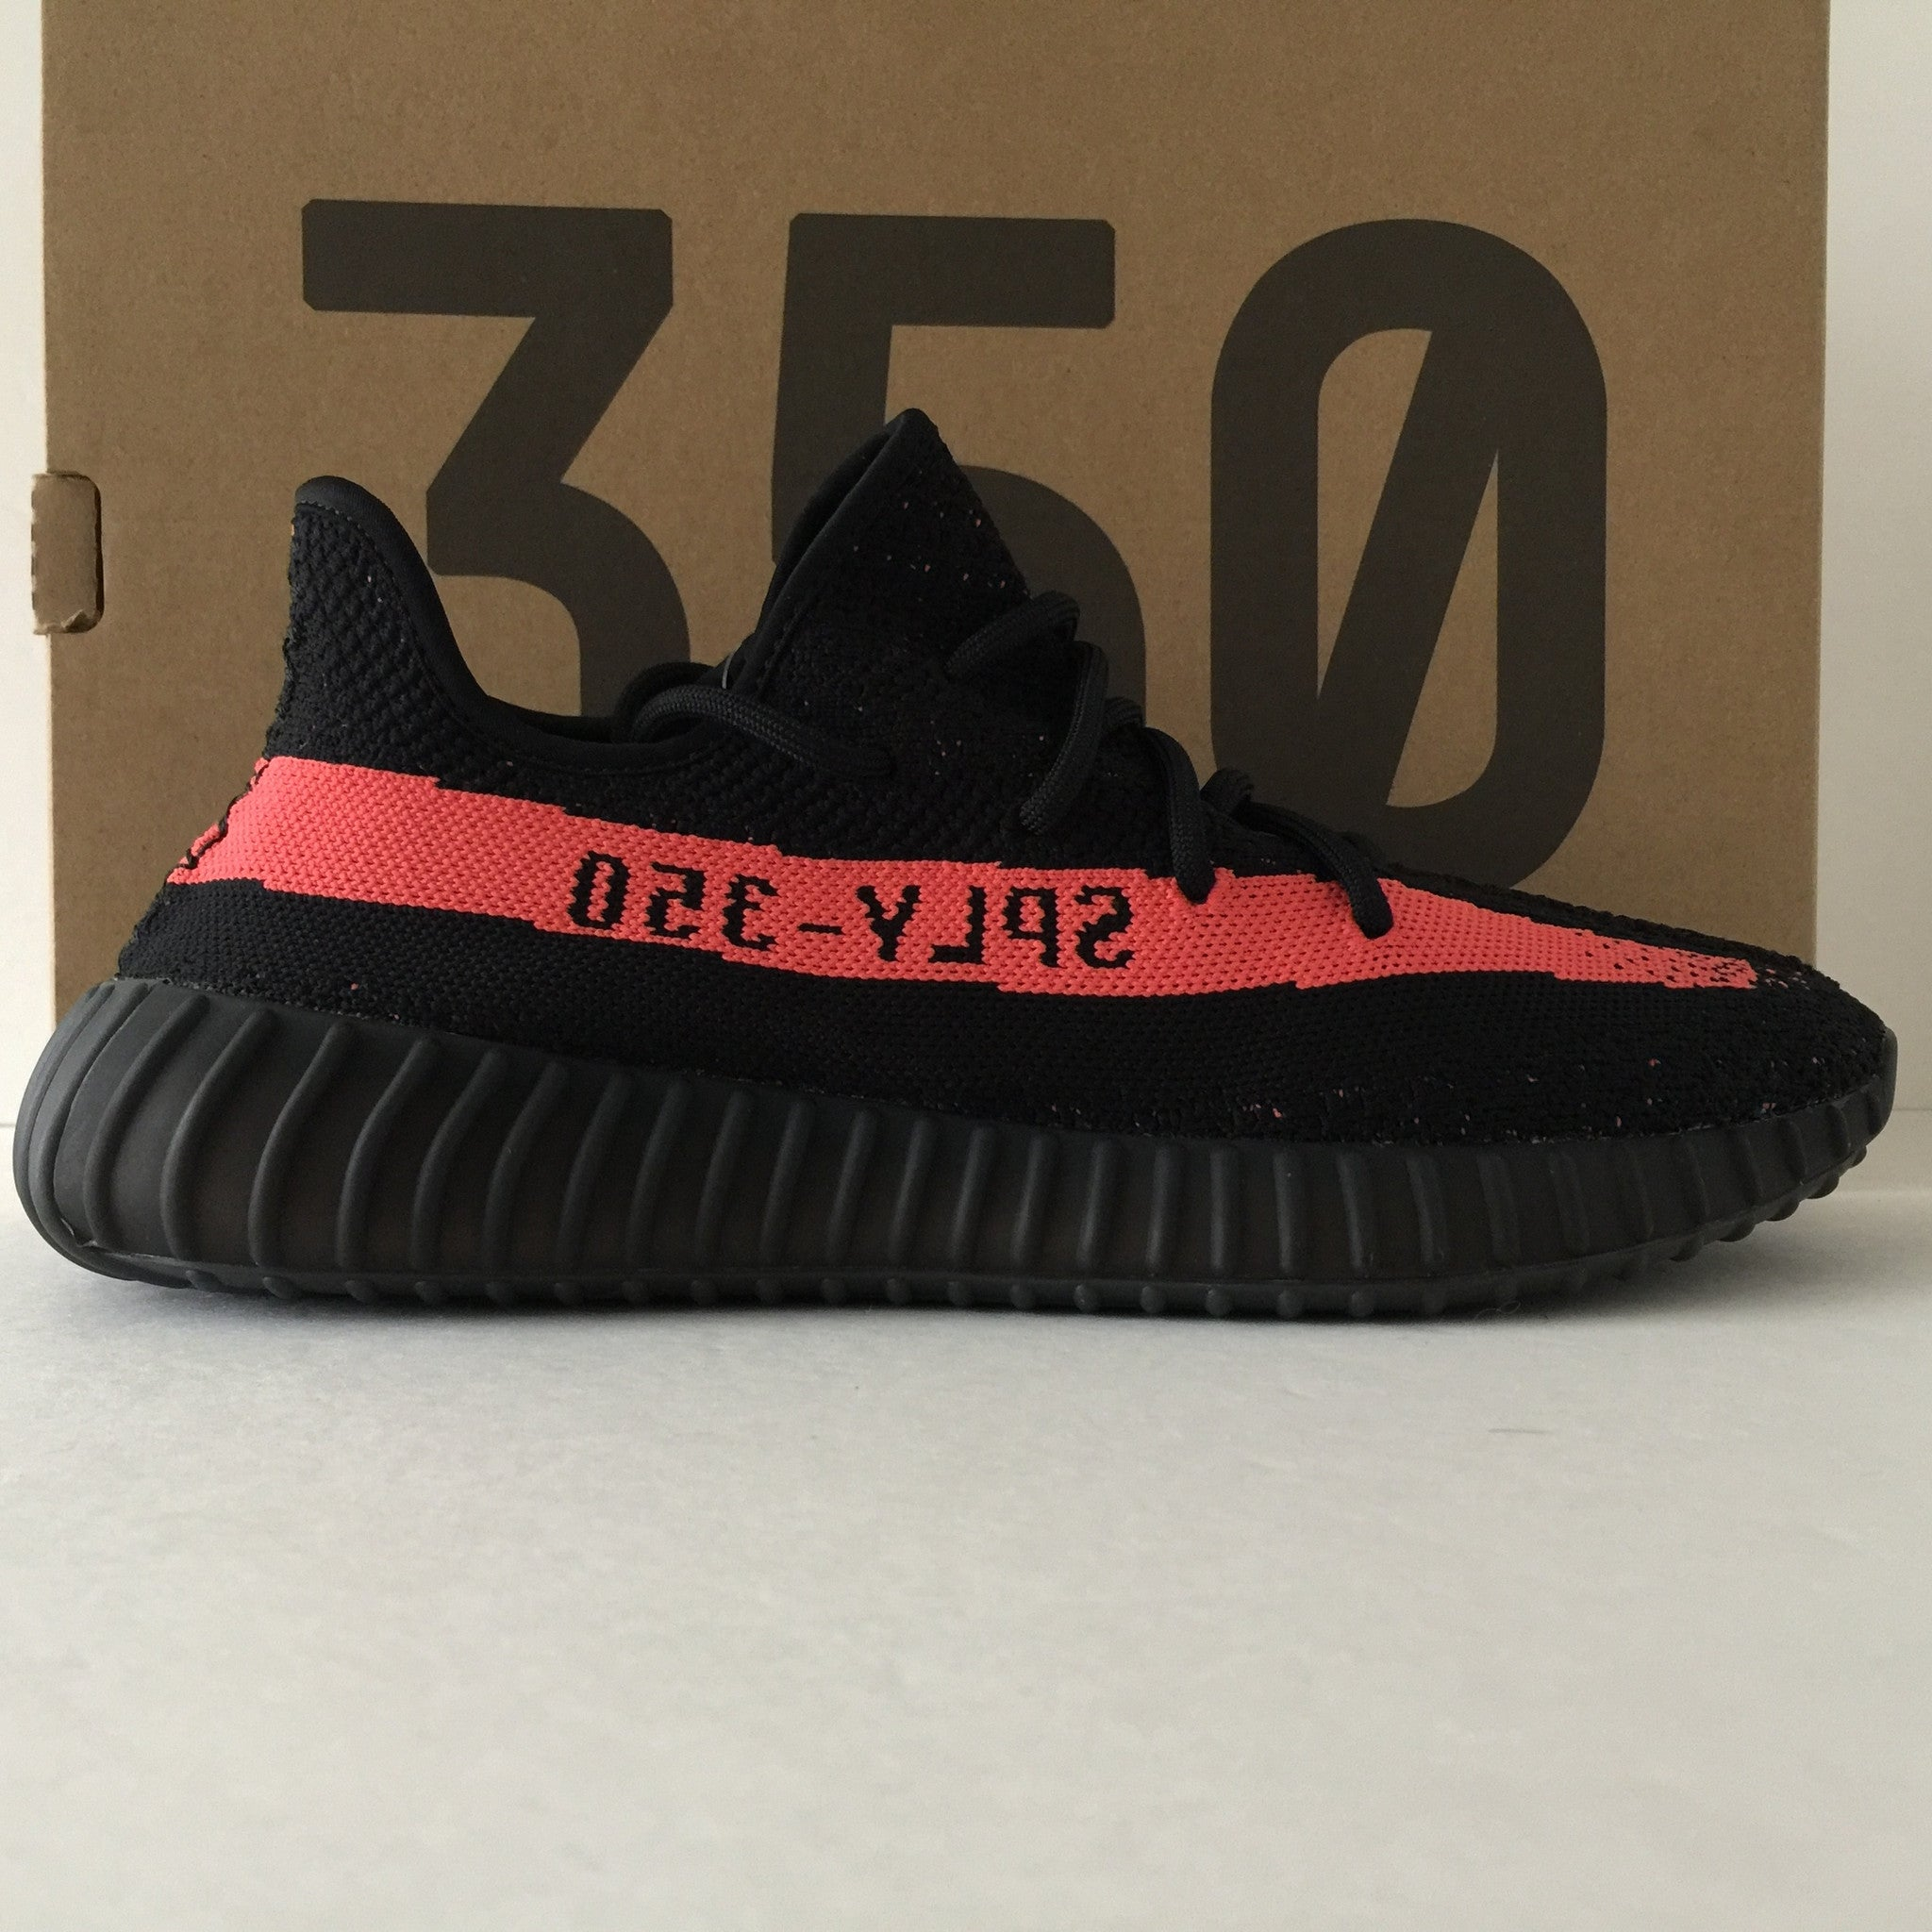 DS Adidas Yeezy Boost 350 V2 Solar Red